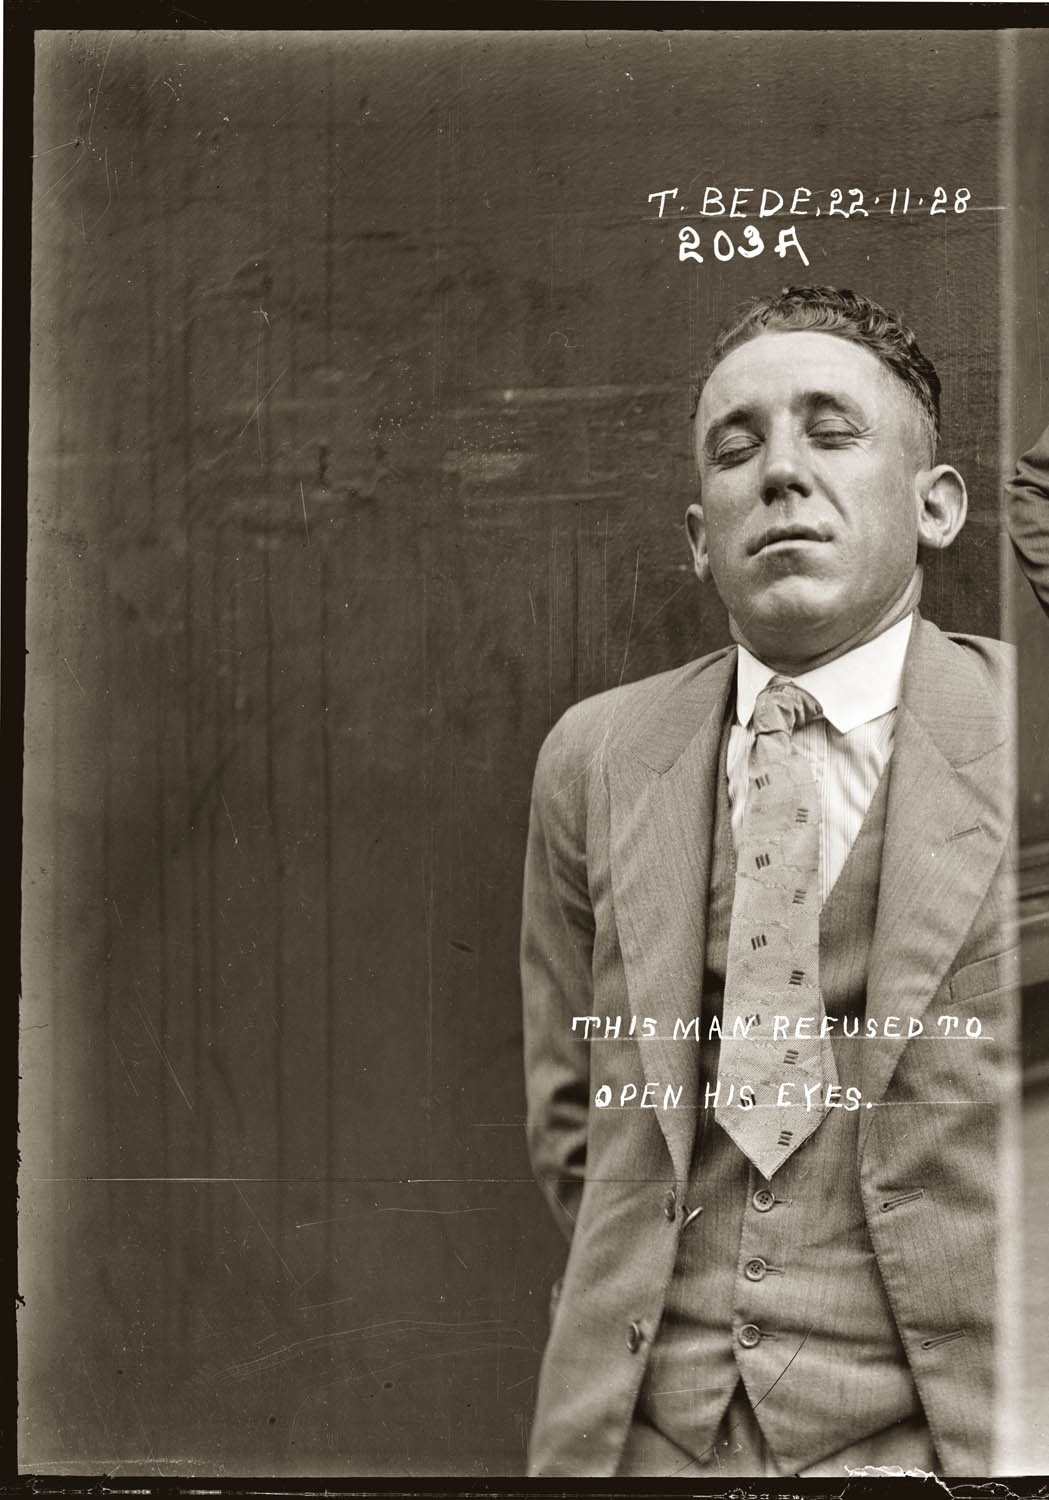 Mug shot of Thomas Bede, Central Police Station, 22 November 1928.